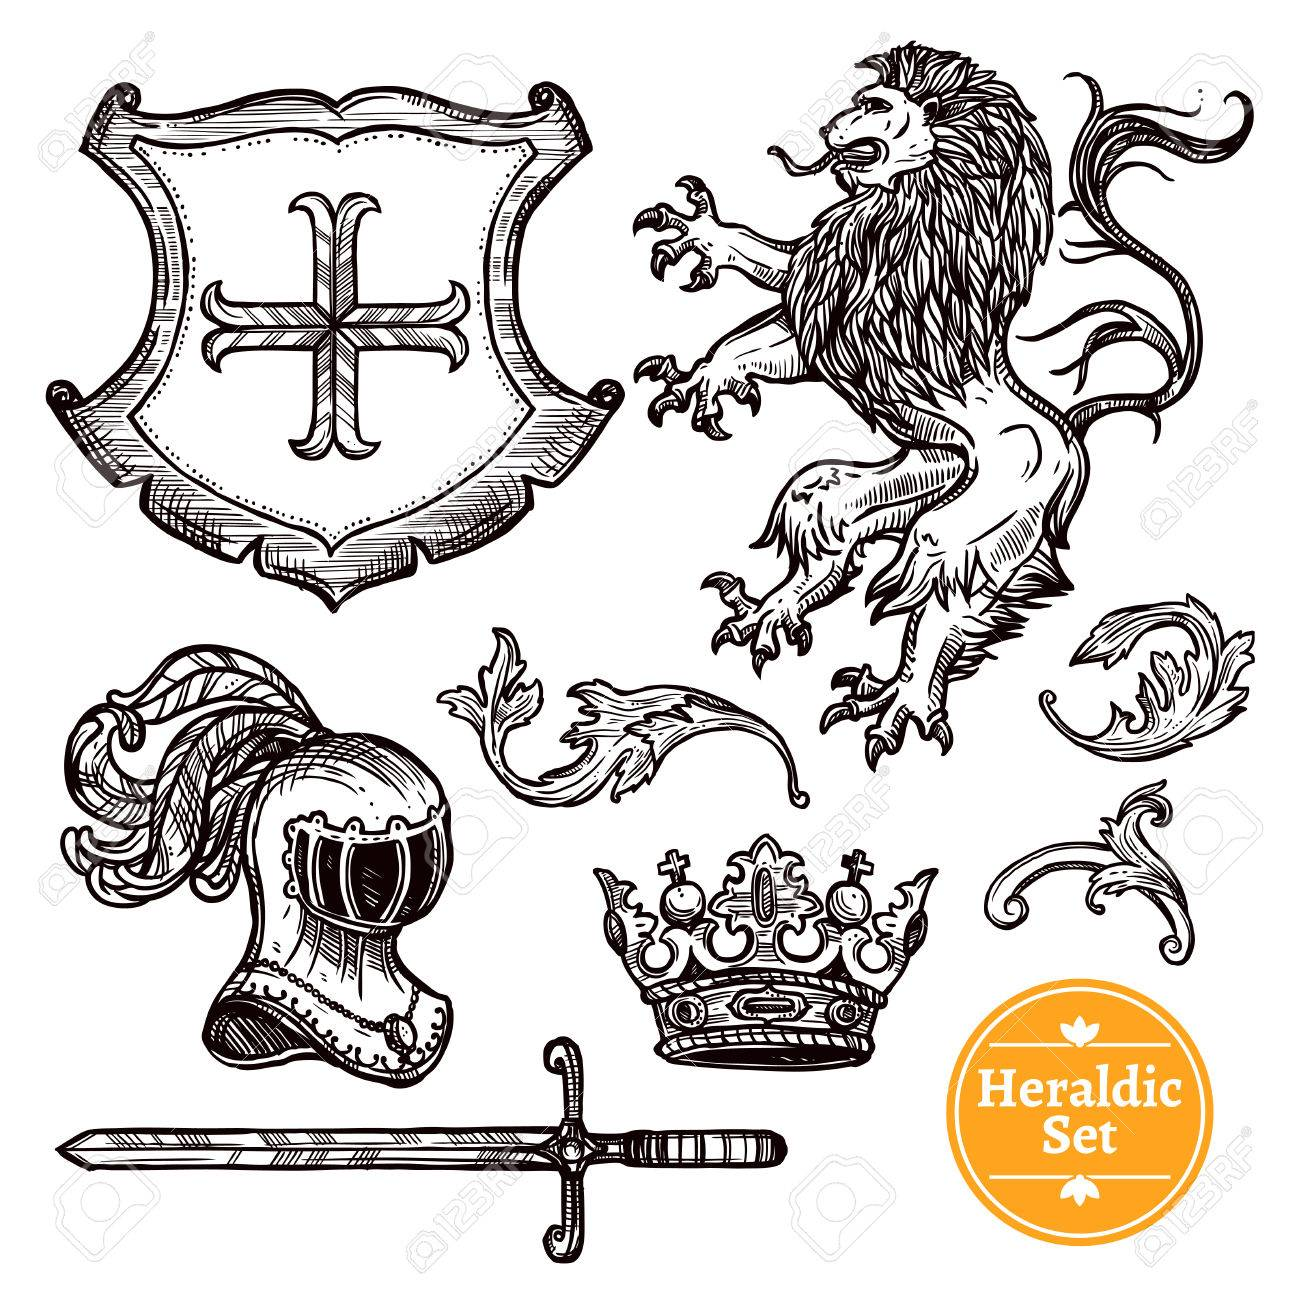 Coat Of Arms Symbols Black Icons Set With Heraldic Animals And